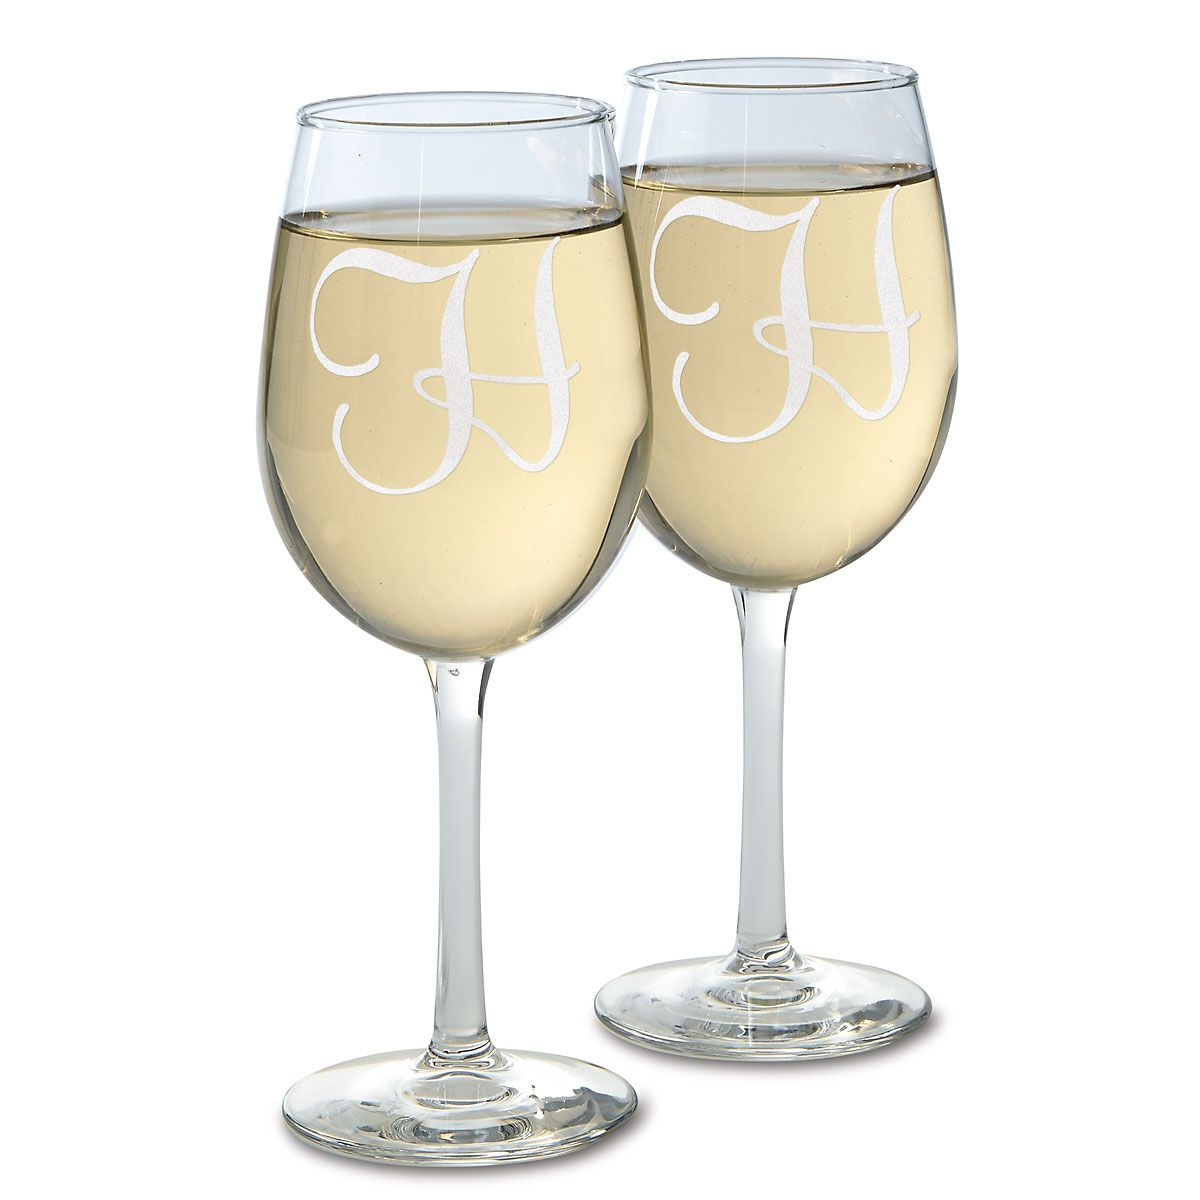 Wine Glass with Initial This elegant wine glass is perfect for entertaining or a quiet evening in. Dishwasher safe. 10 1/2 oz. Specify 1 initial